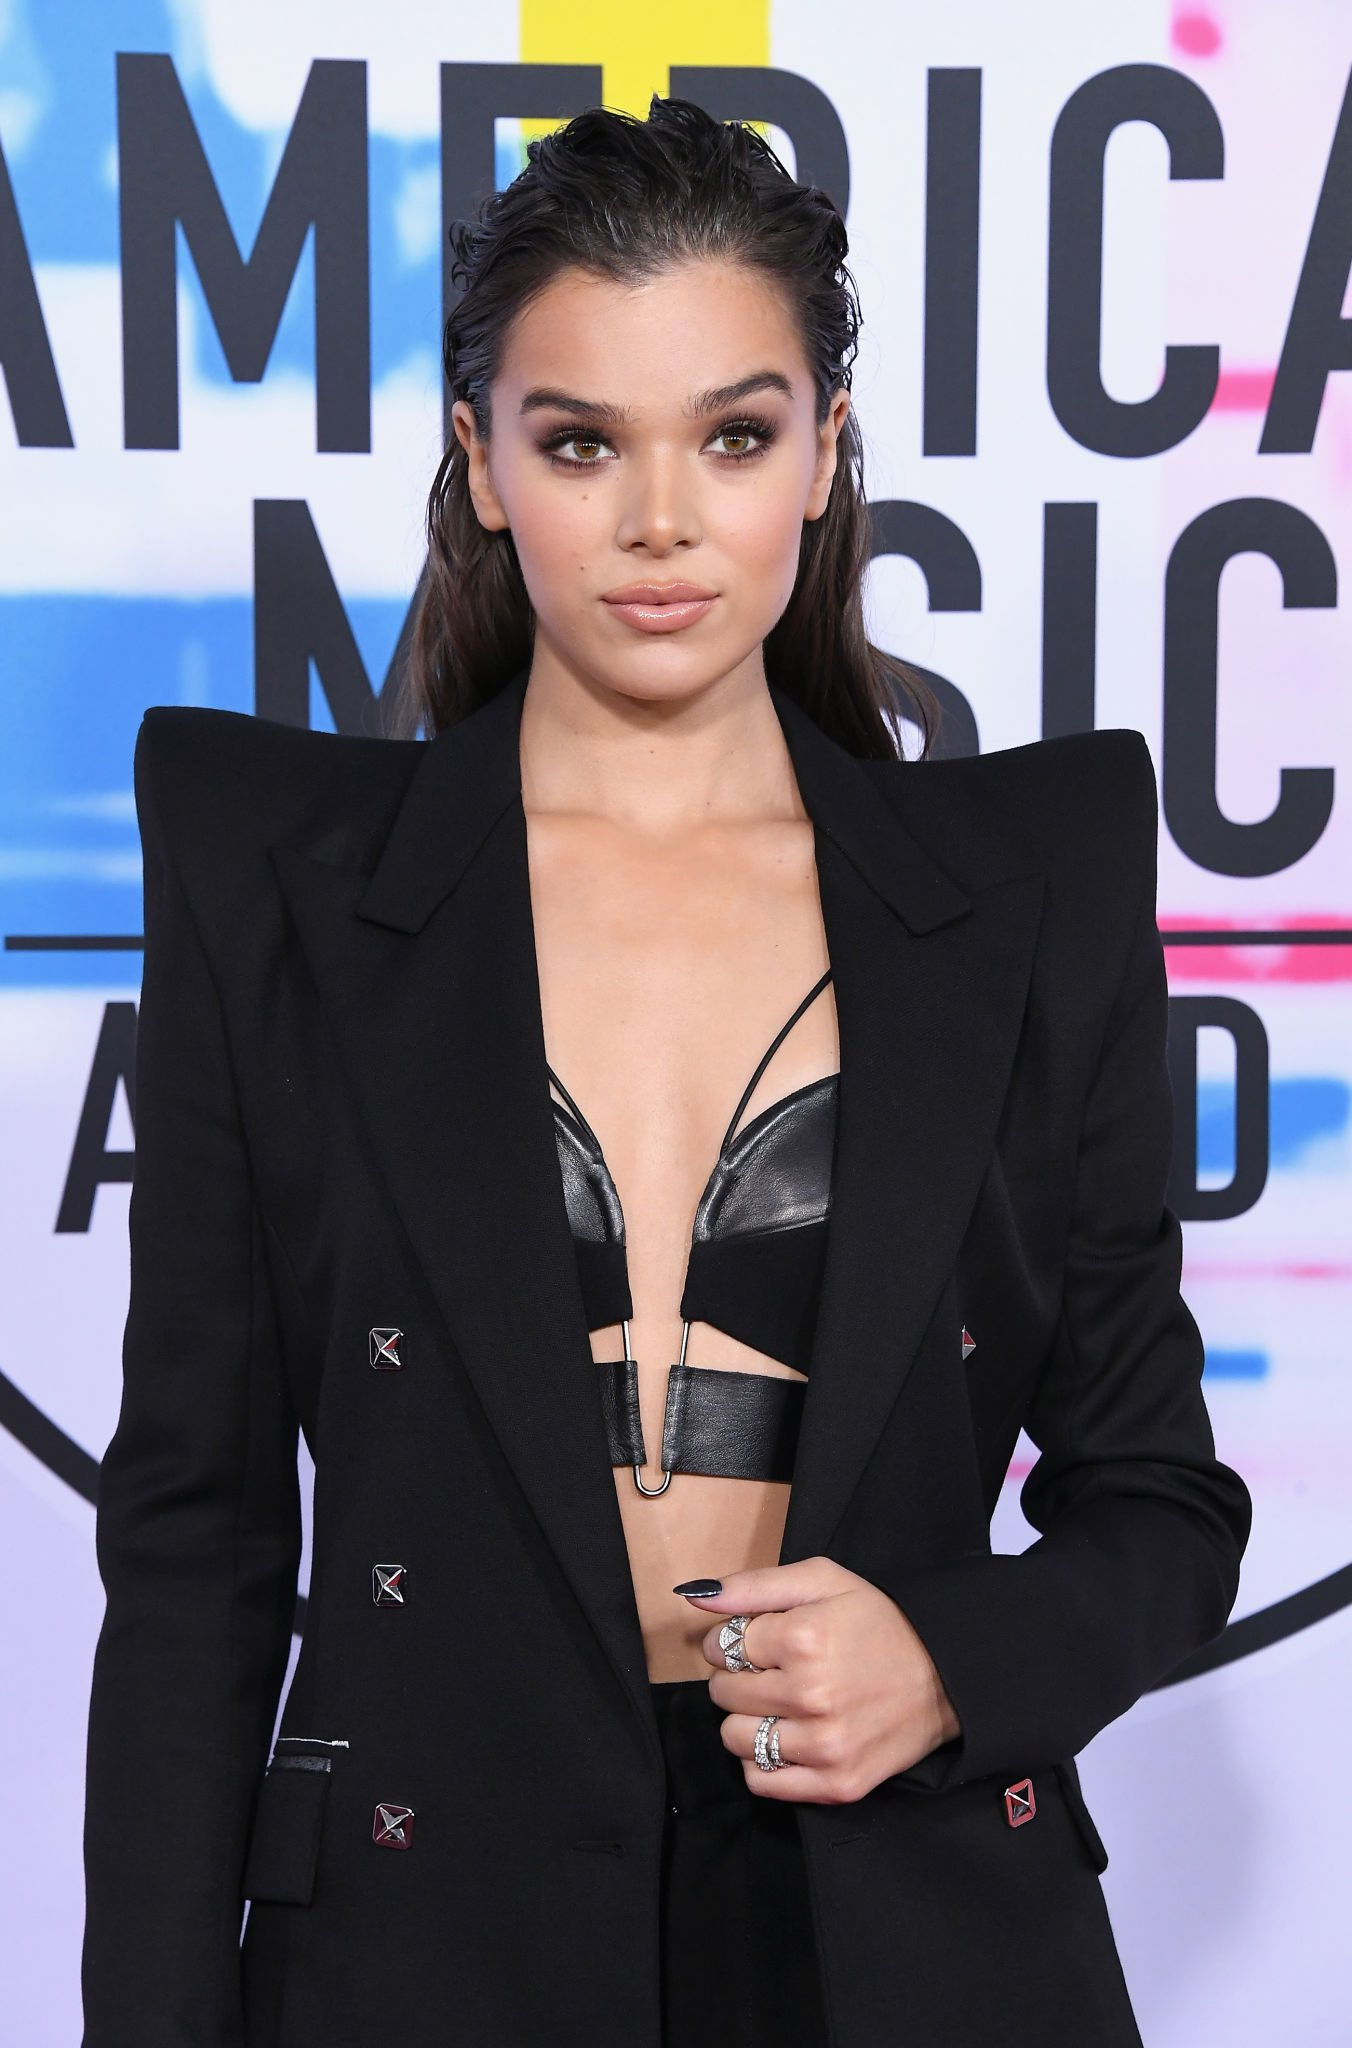 American Music Awards ��  #LetMeGo https://t.co/P4qLOkhsPg